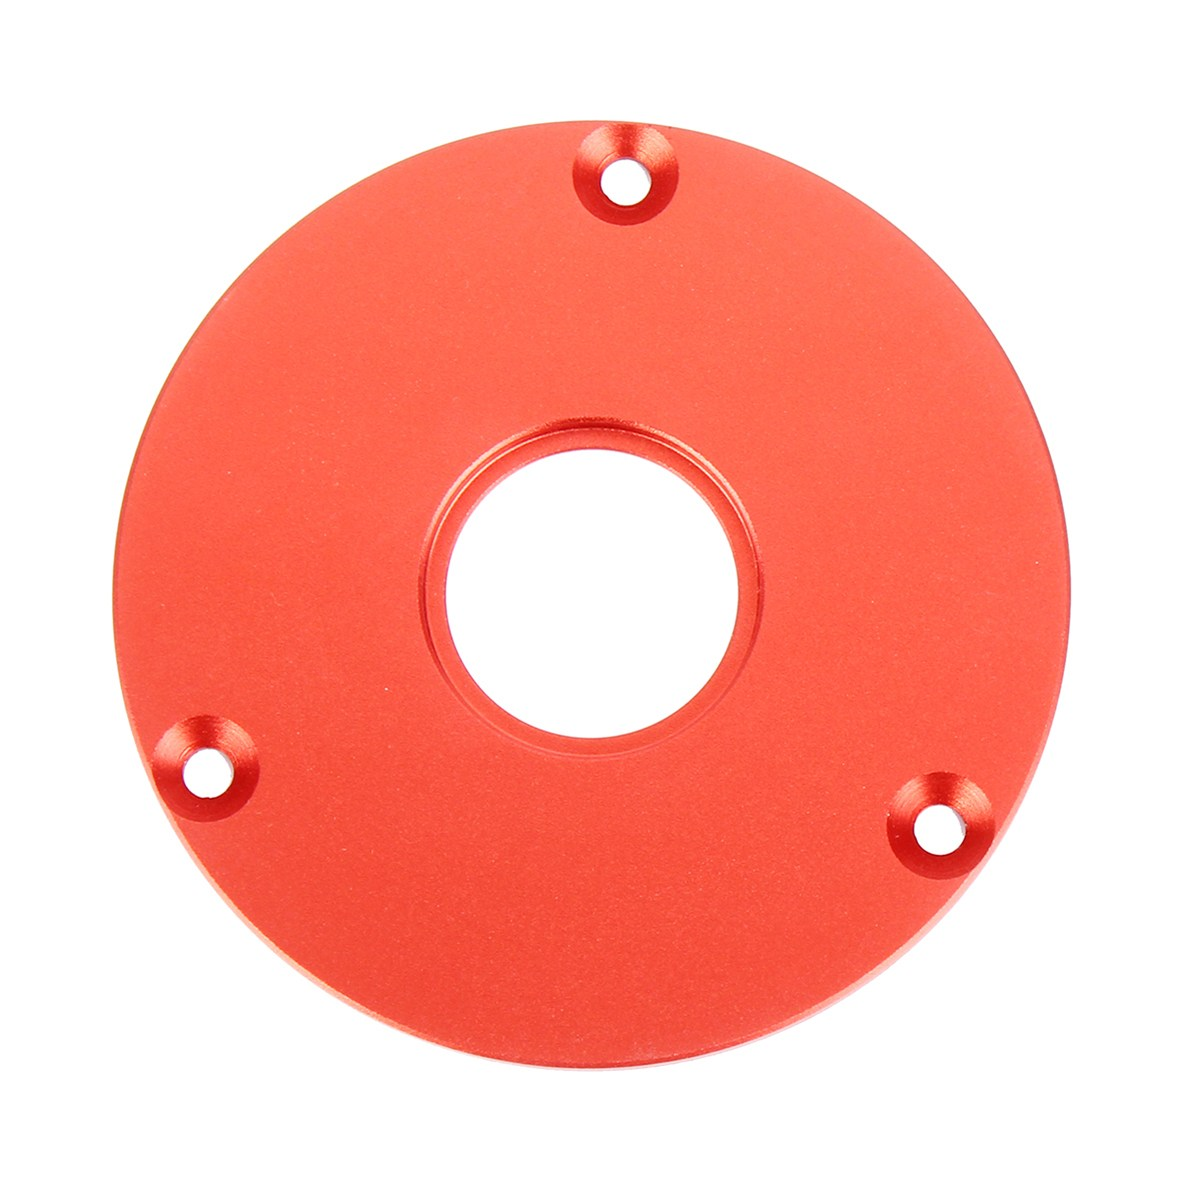 Universal router table insert plate aluminium alloy for diy universal router table insert plate aluminium alloy for diy woodworking engraving machine 200x300x10mm high quality in wood routers from tools on greentooth Images